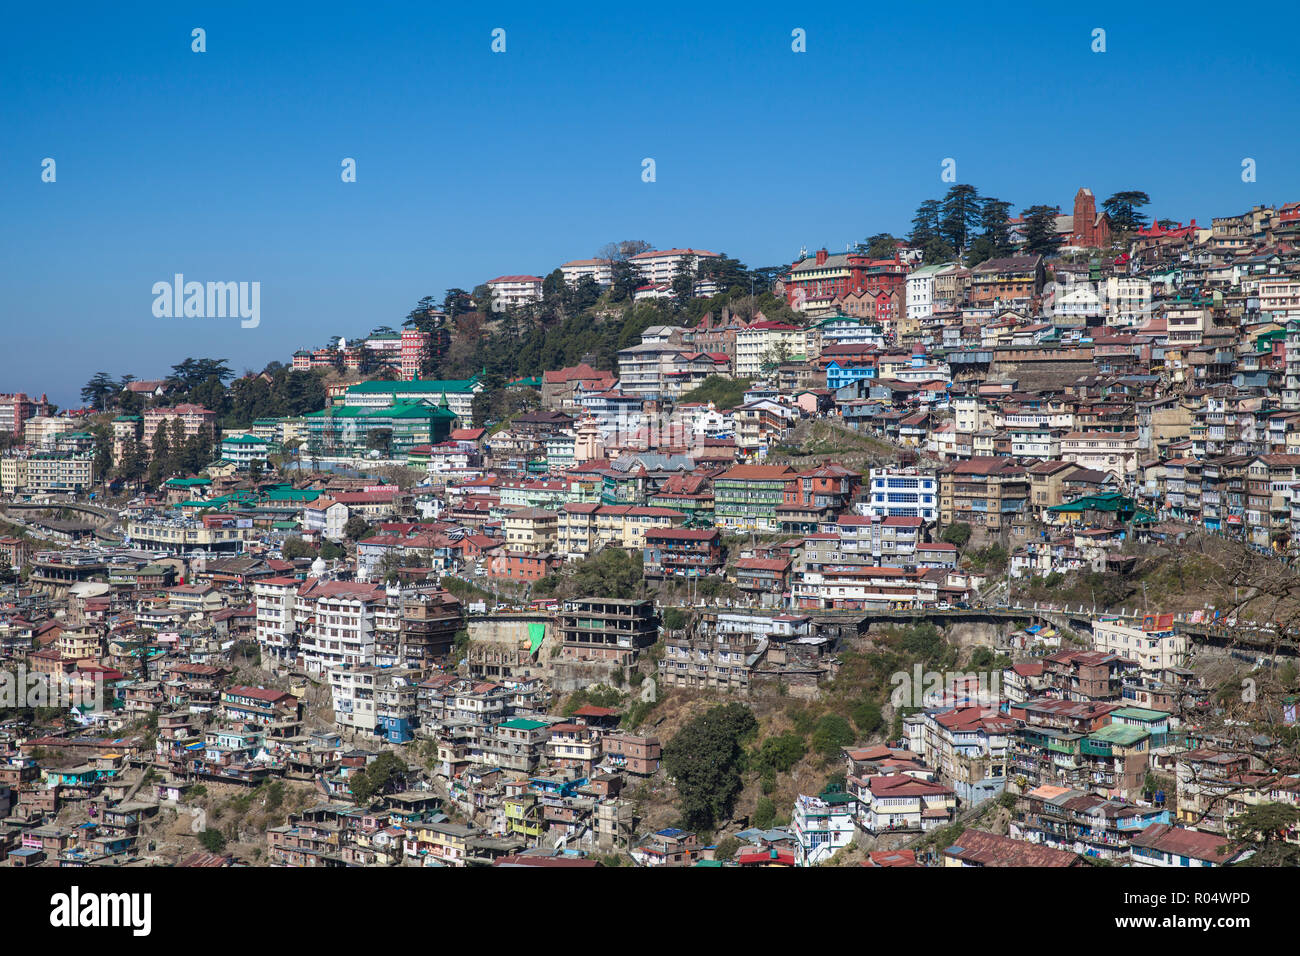 View of city center, Shimla (Simla), Himachal Pradesh, India, Asia Stock Photo